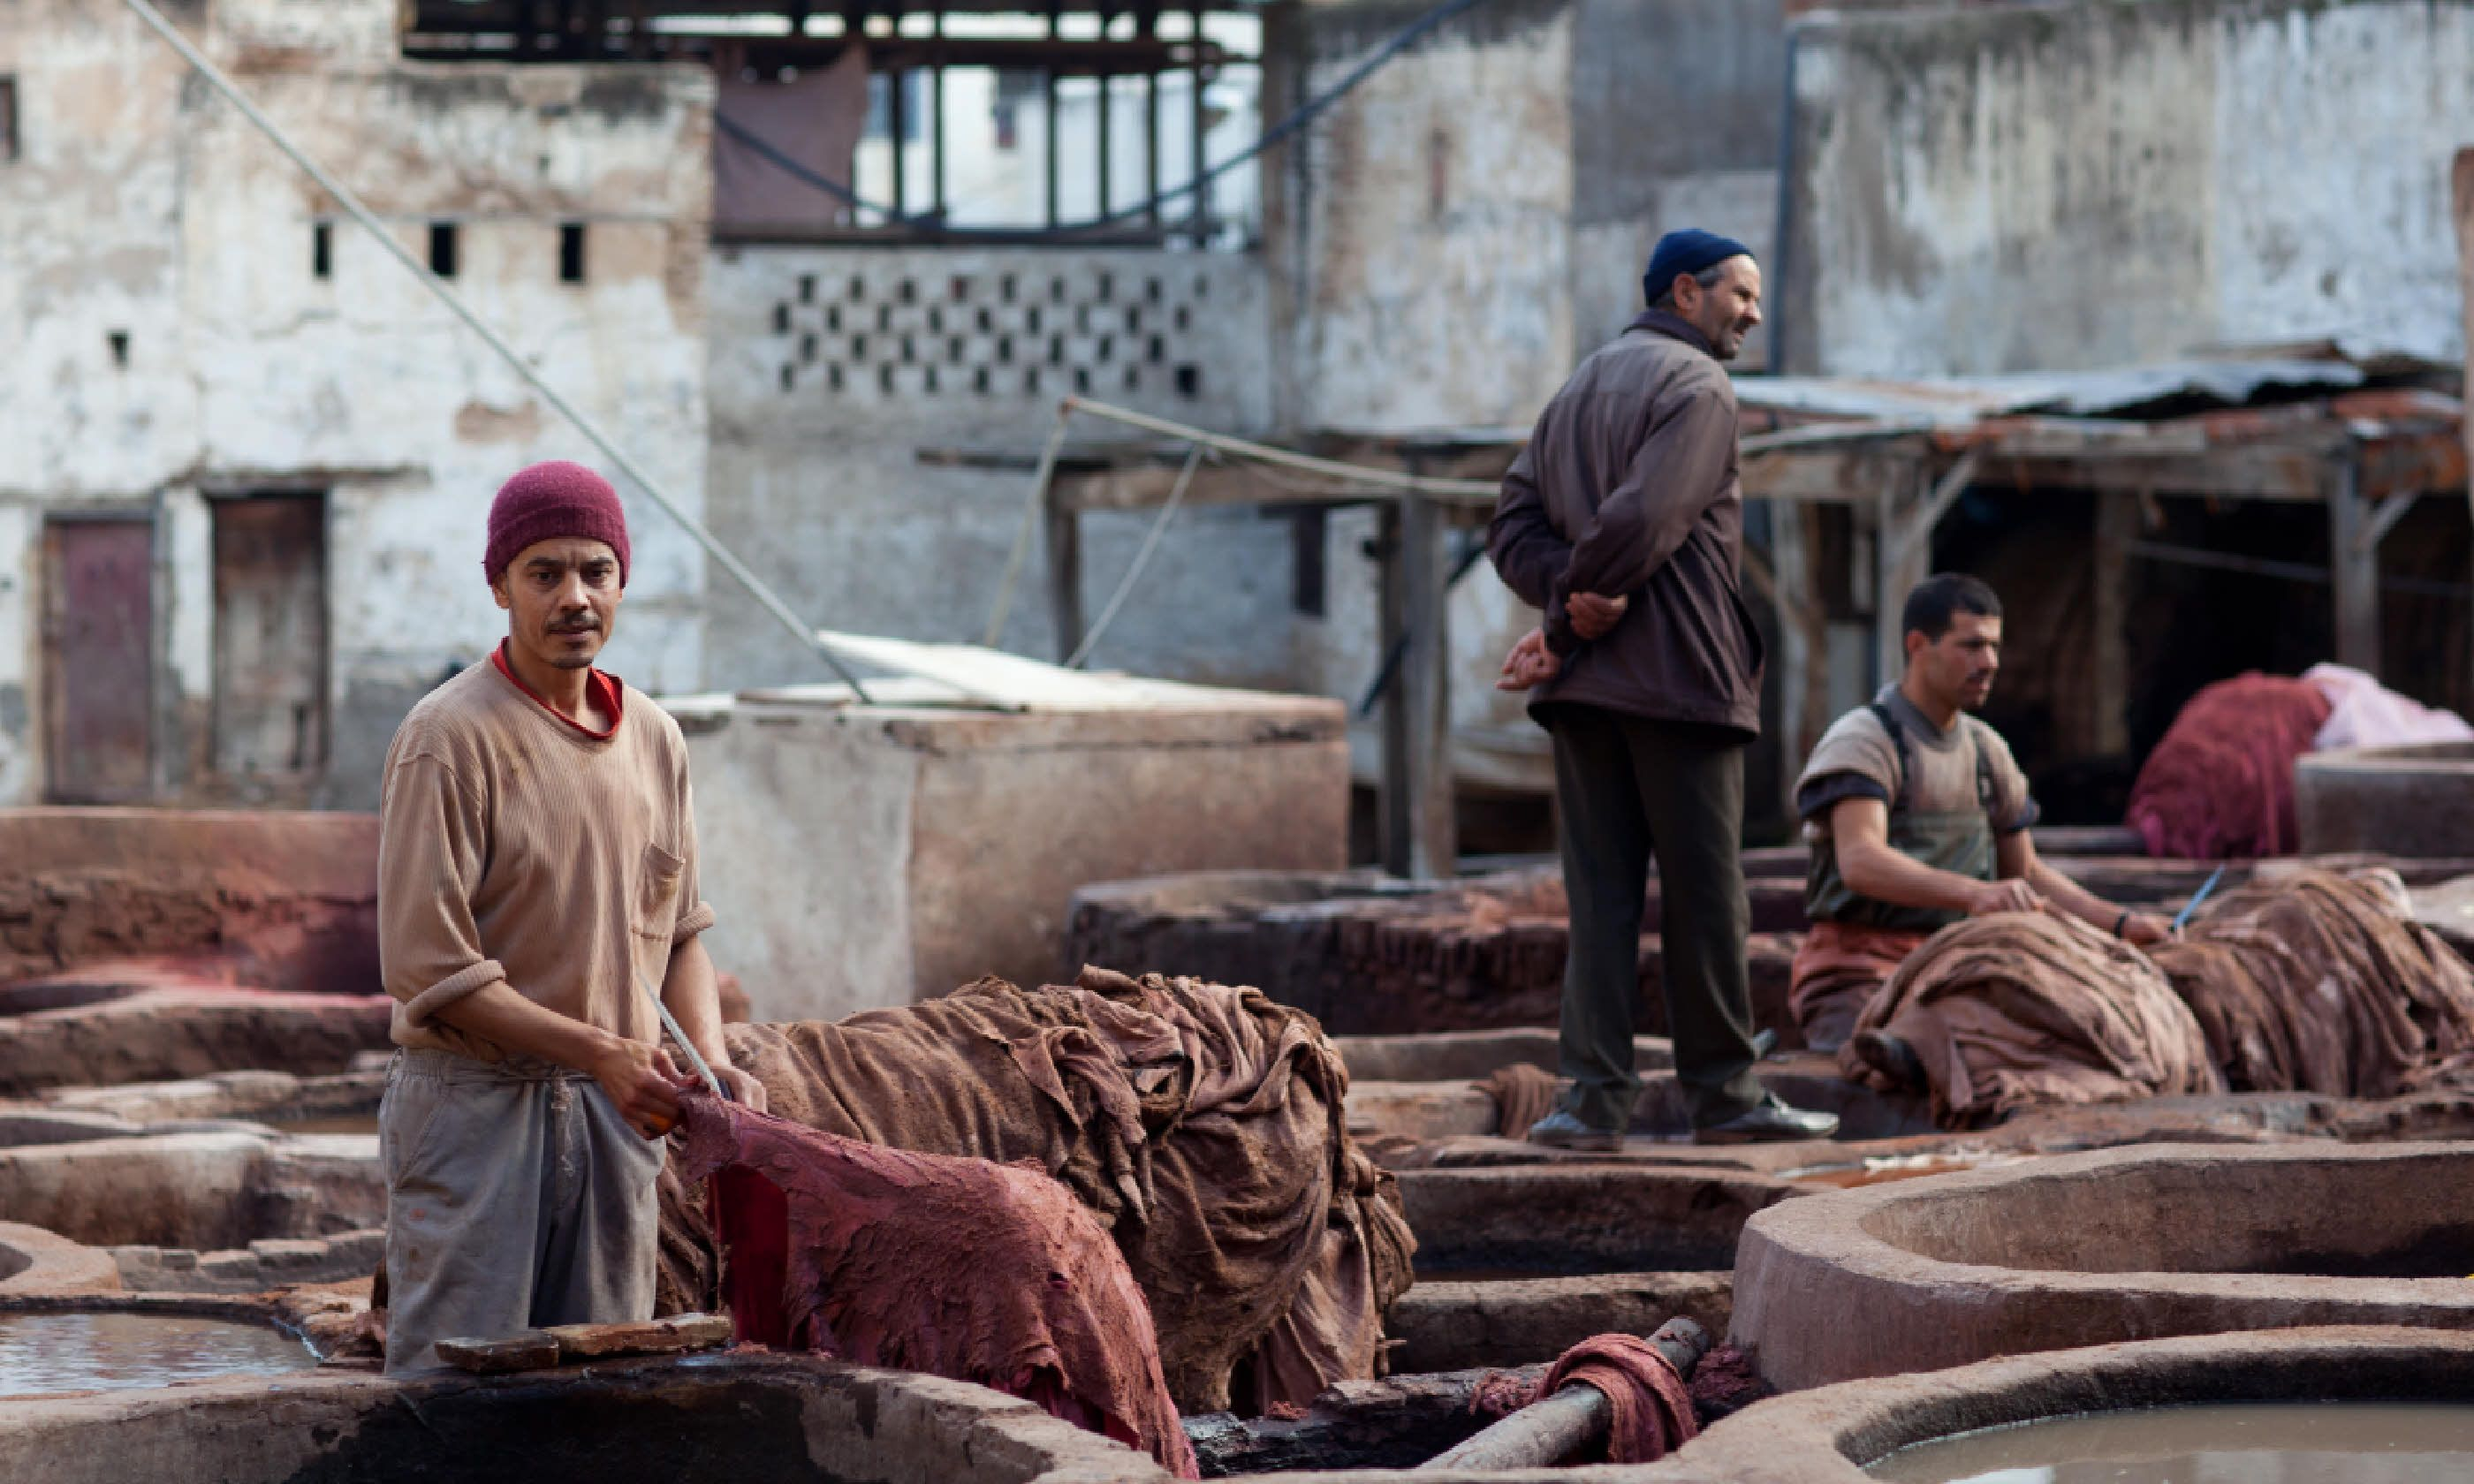 Morocco tannery (Dreamstime)